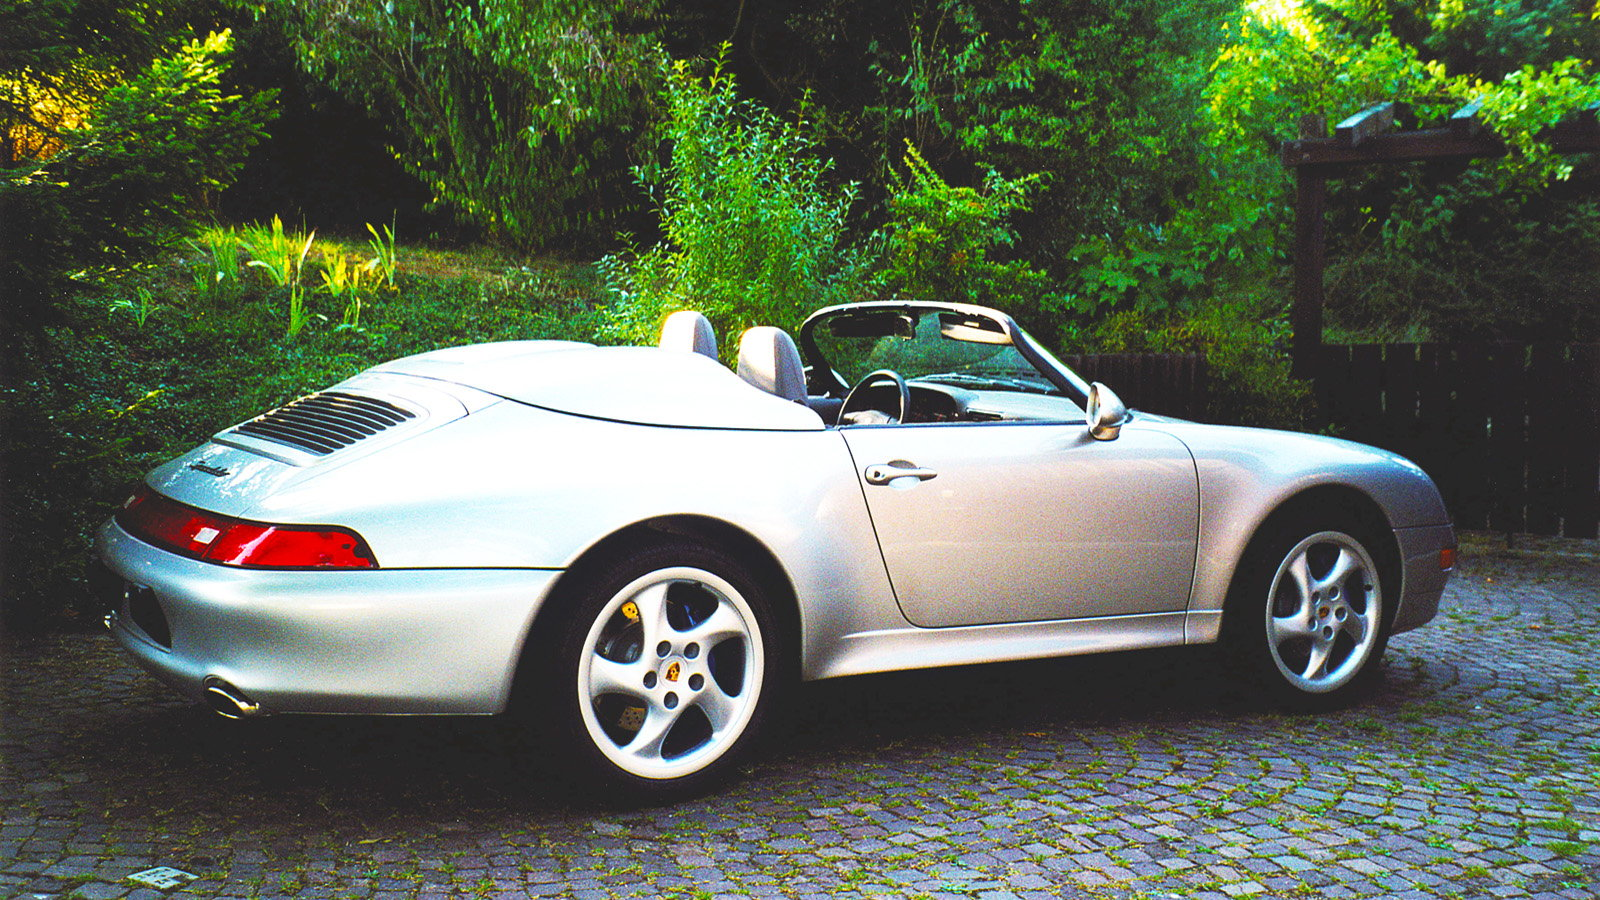 The technical improvements of the 993 model.